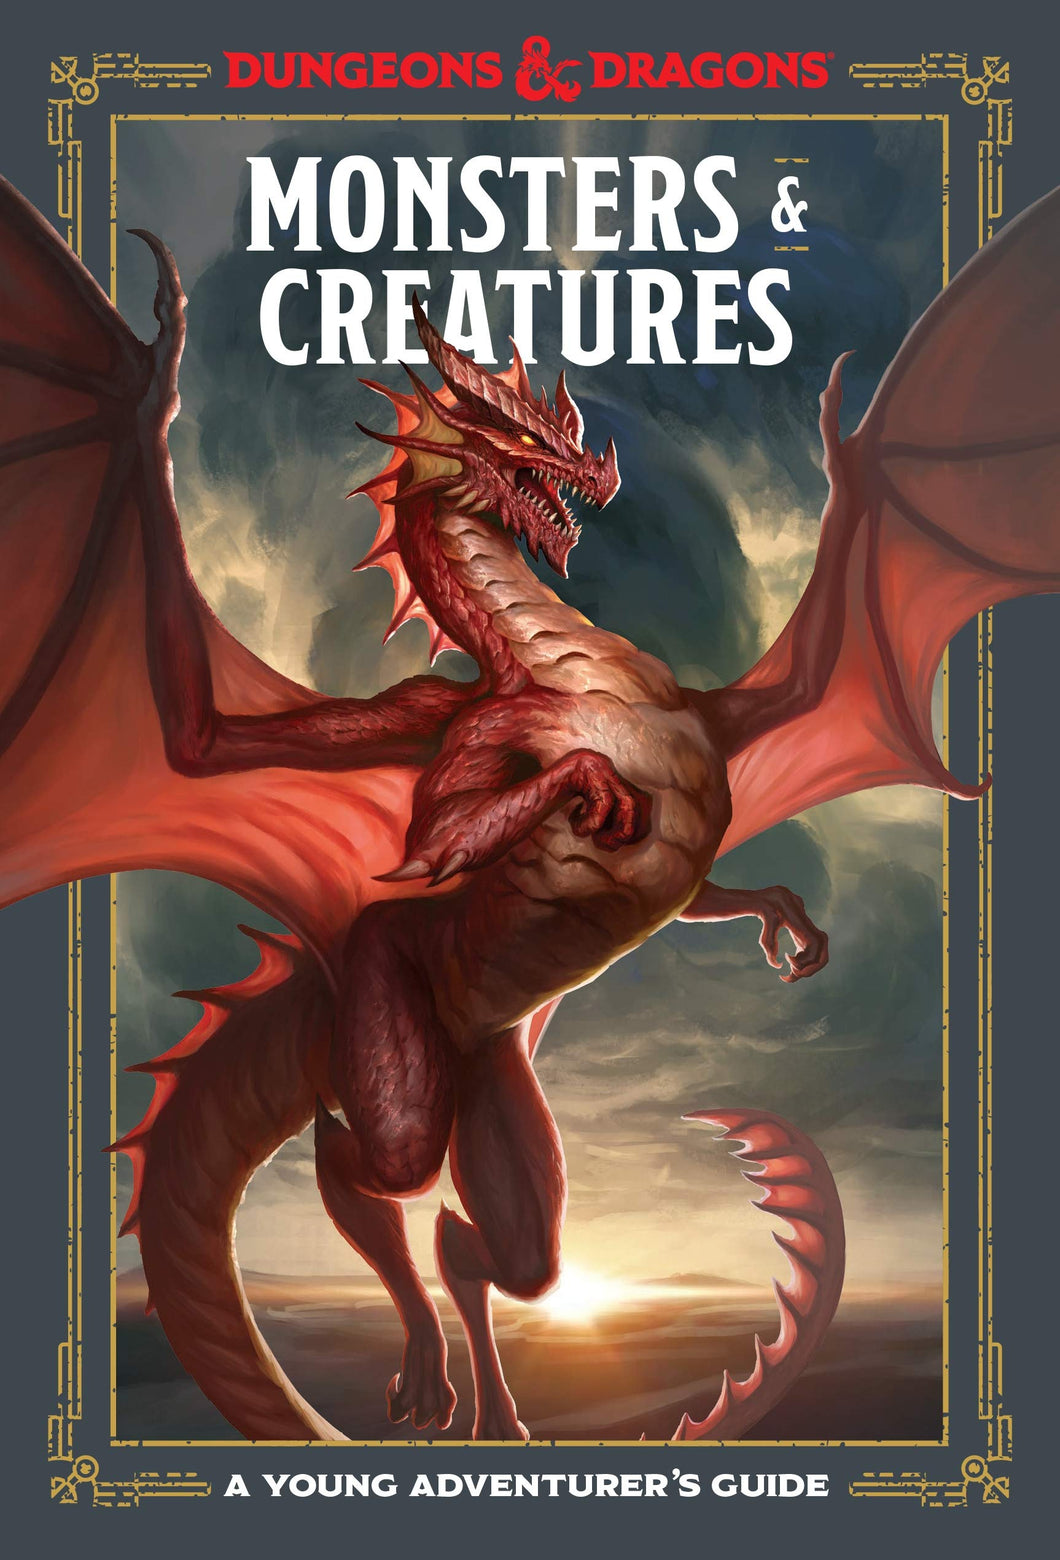 DUNGEONS AND DRAGONS A YOUNG ADVENTURER'S GUIDE: MONSTERS AND CREATURES